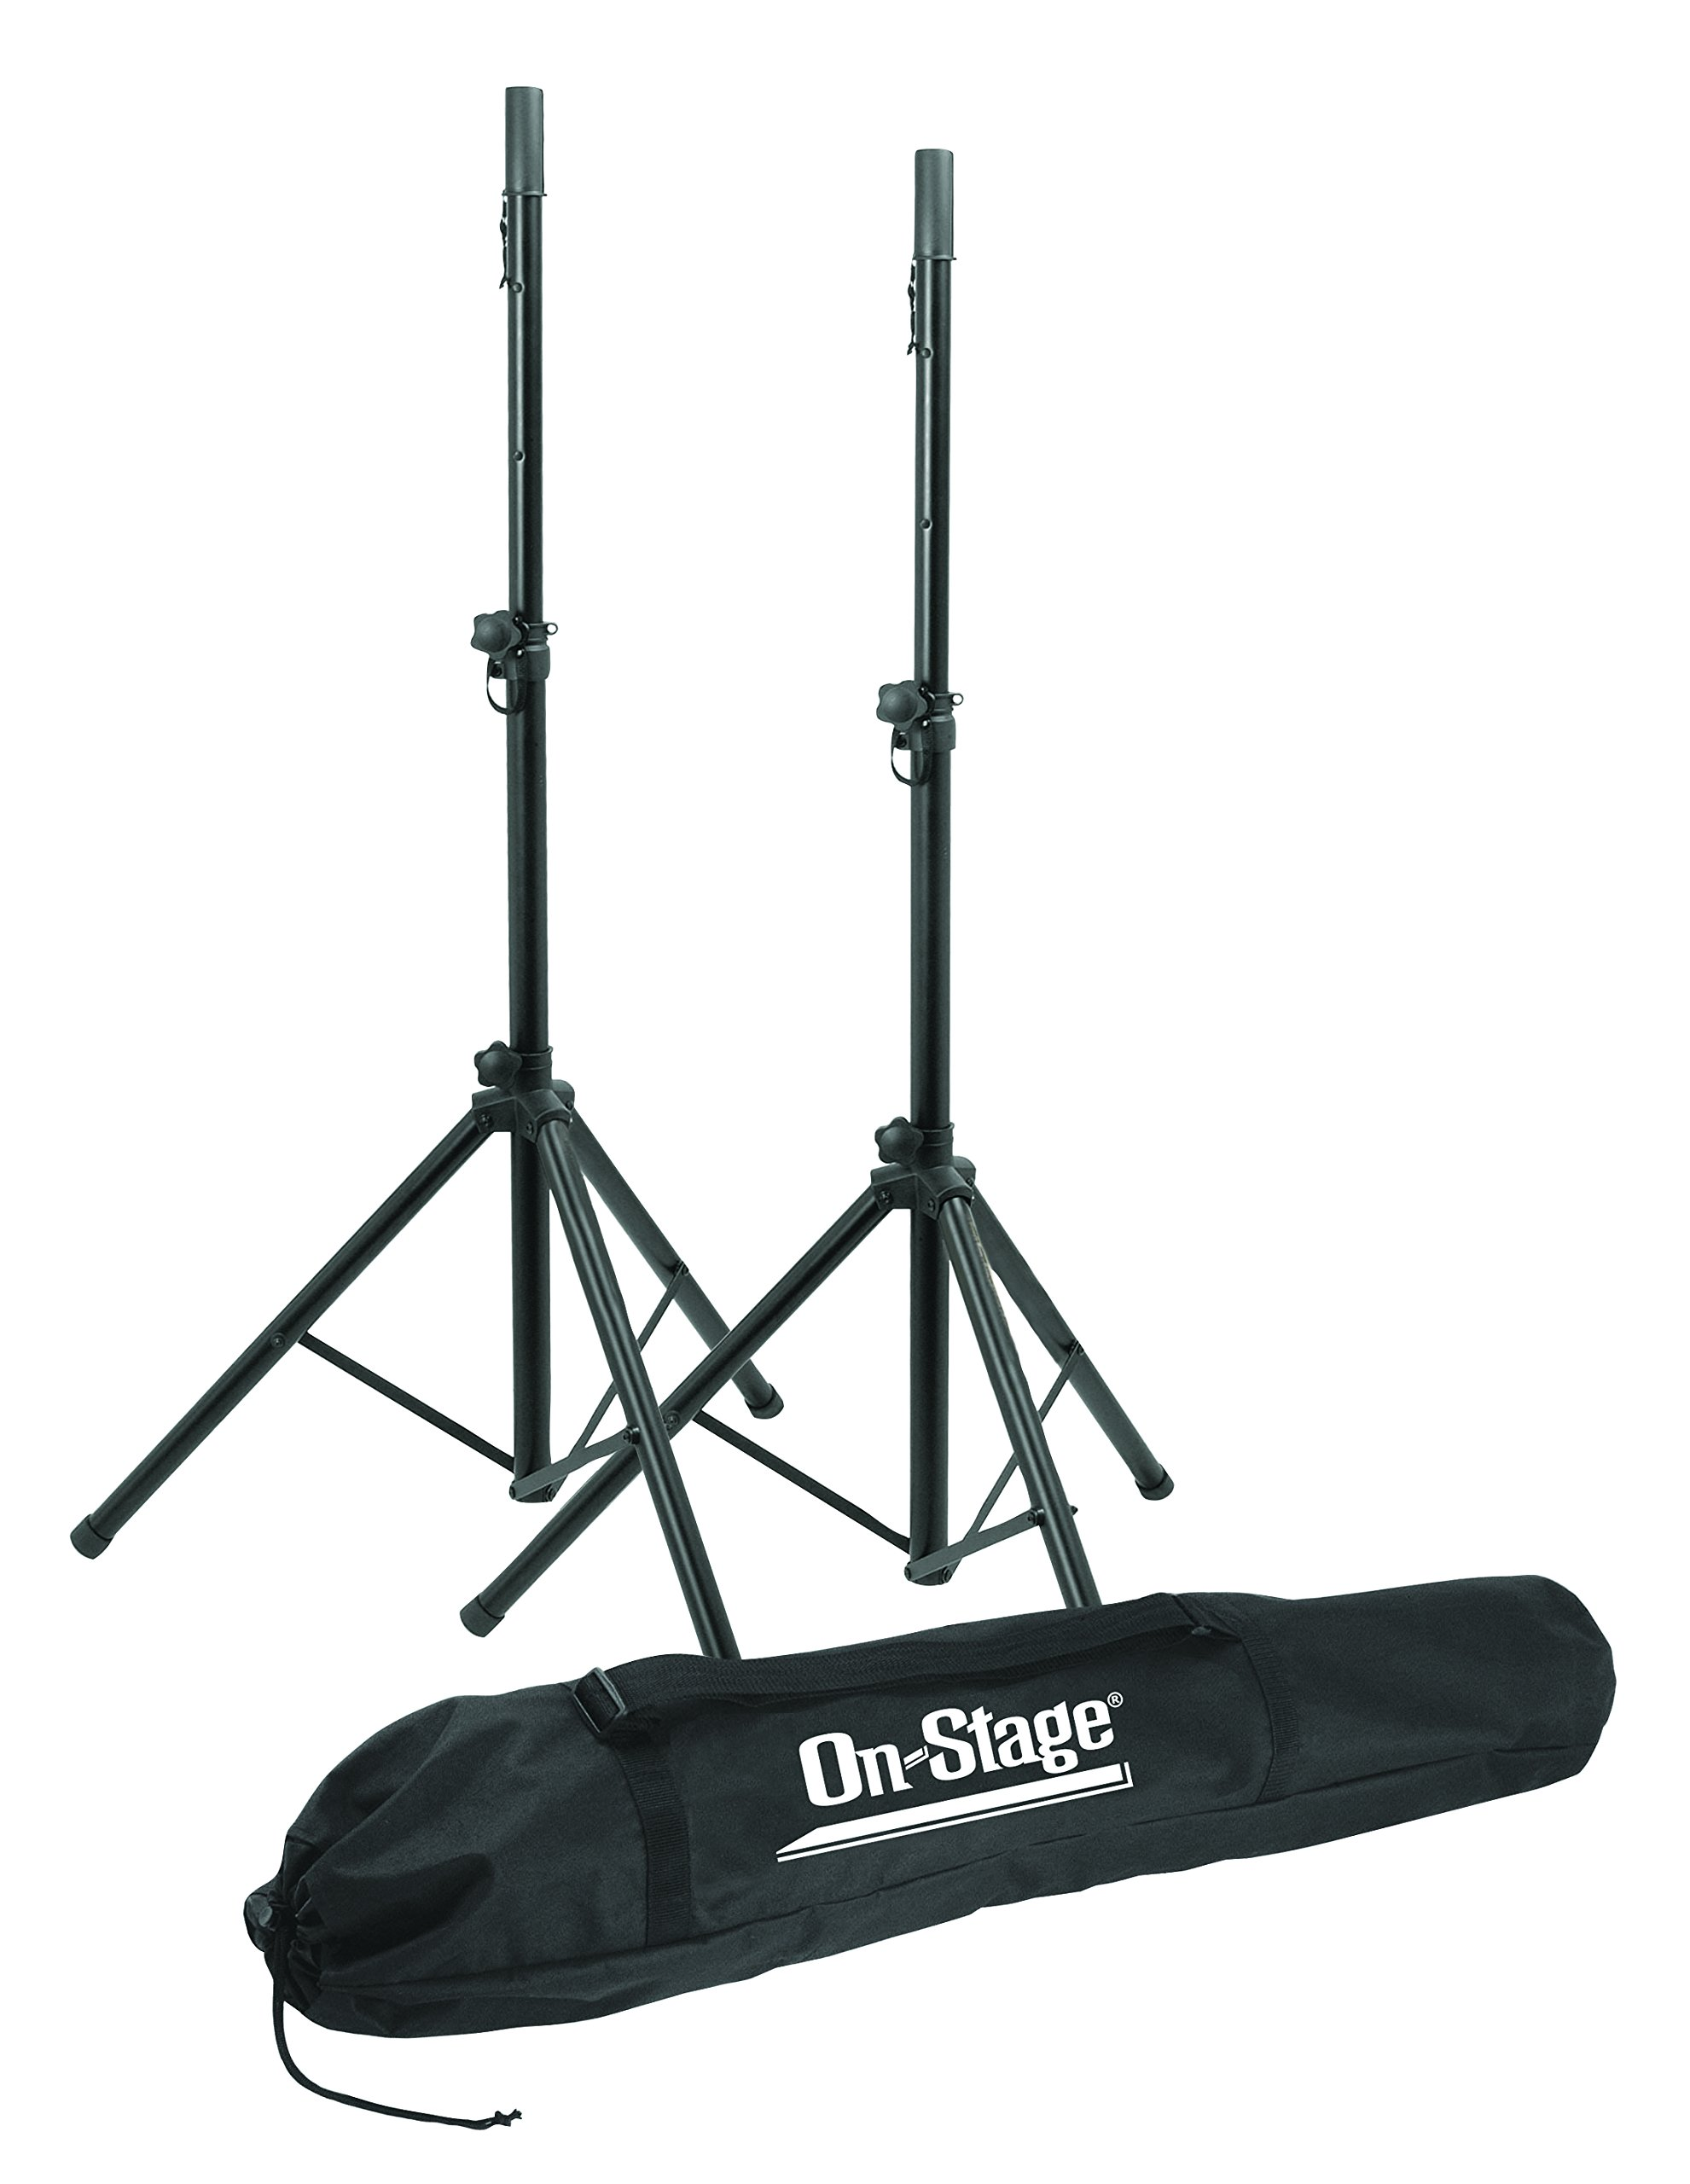 On Stage SSP7900 All Aluminum Speaker Stand Package with Bag by OnStage